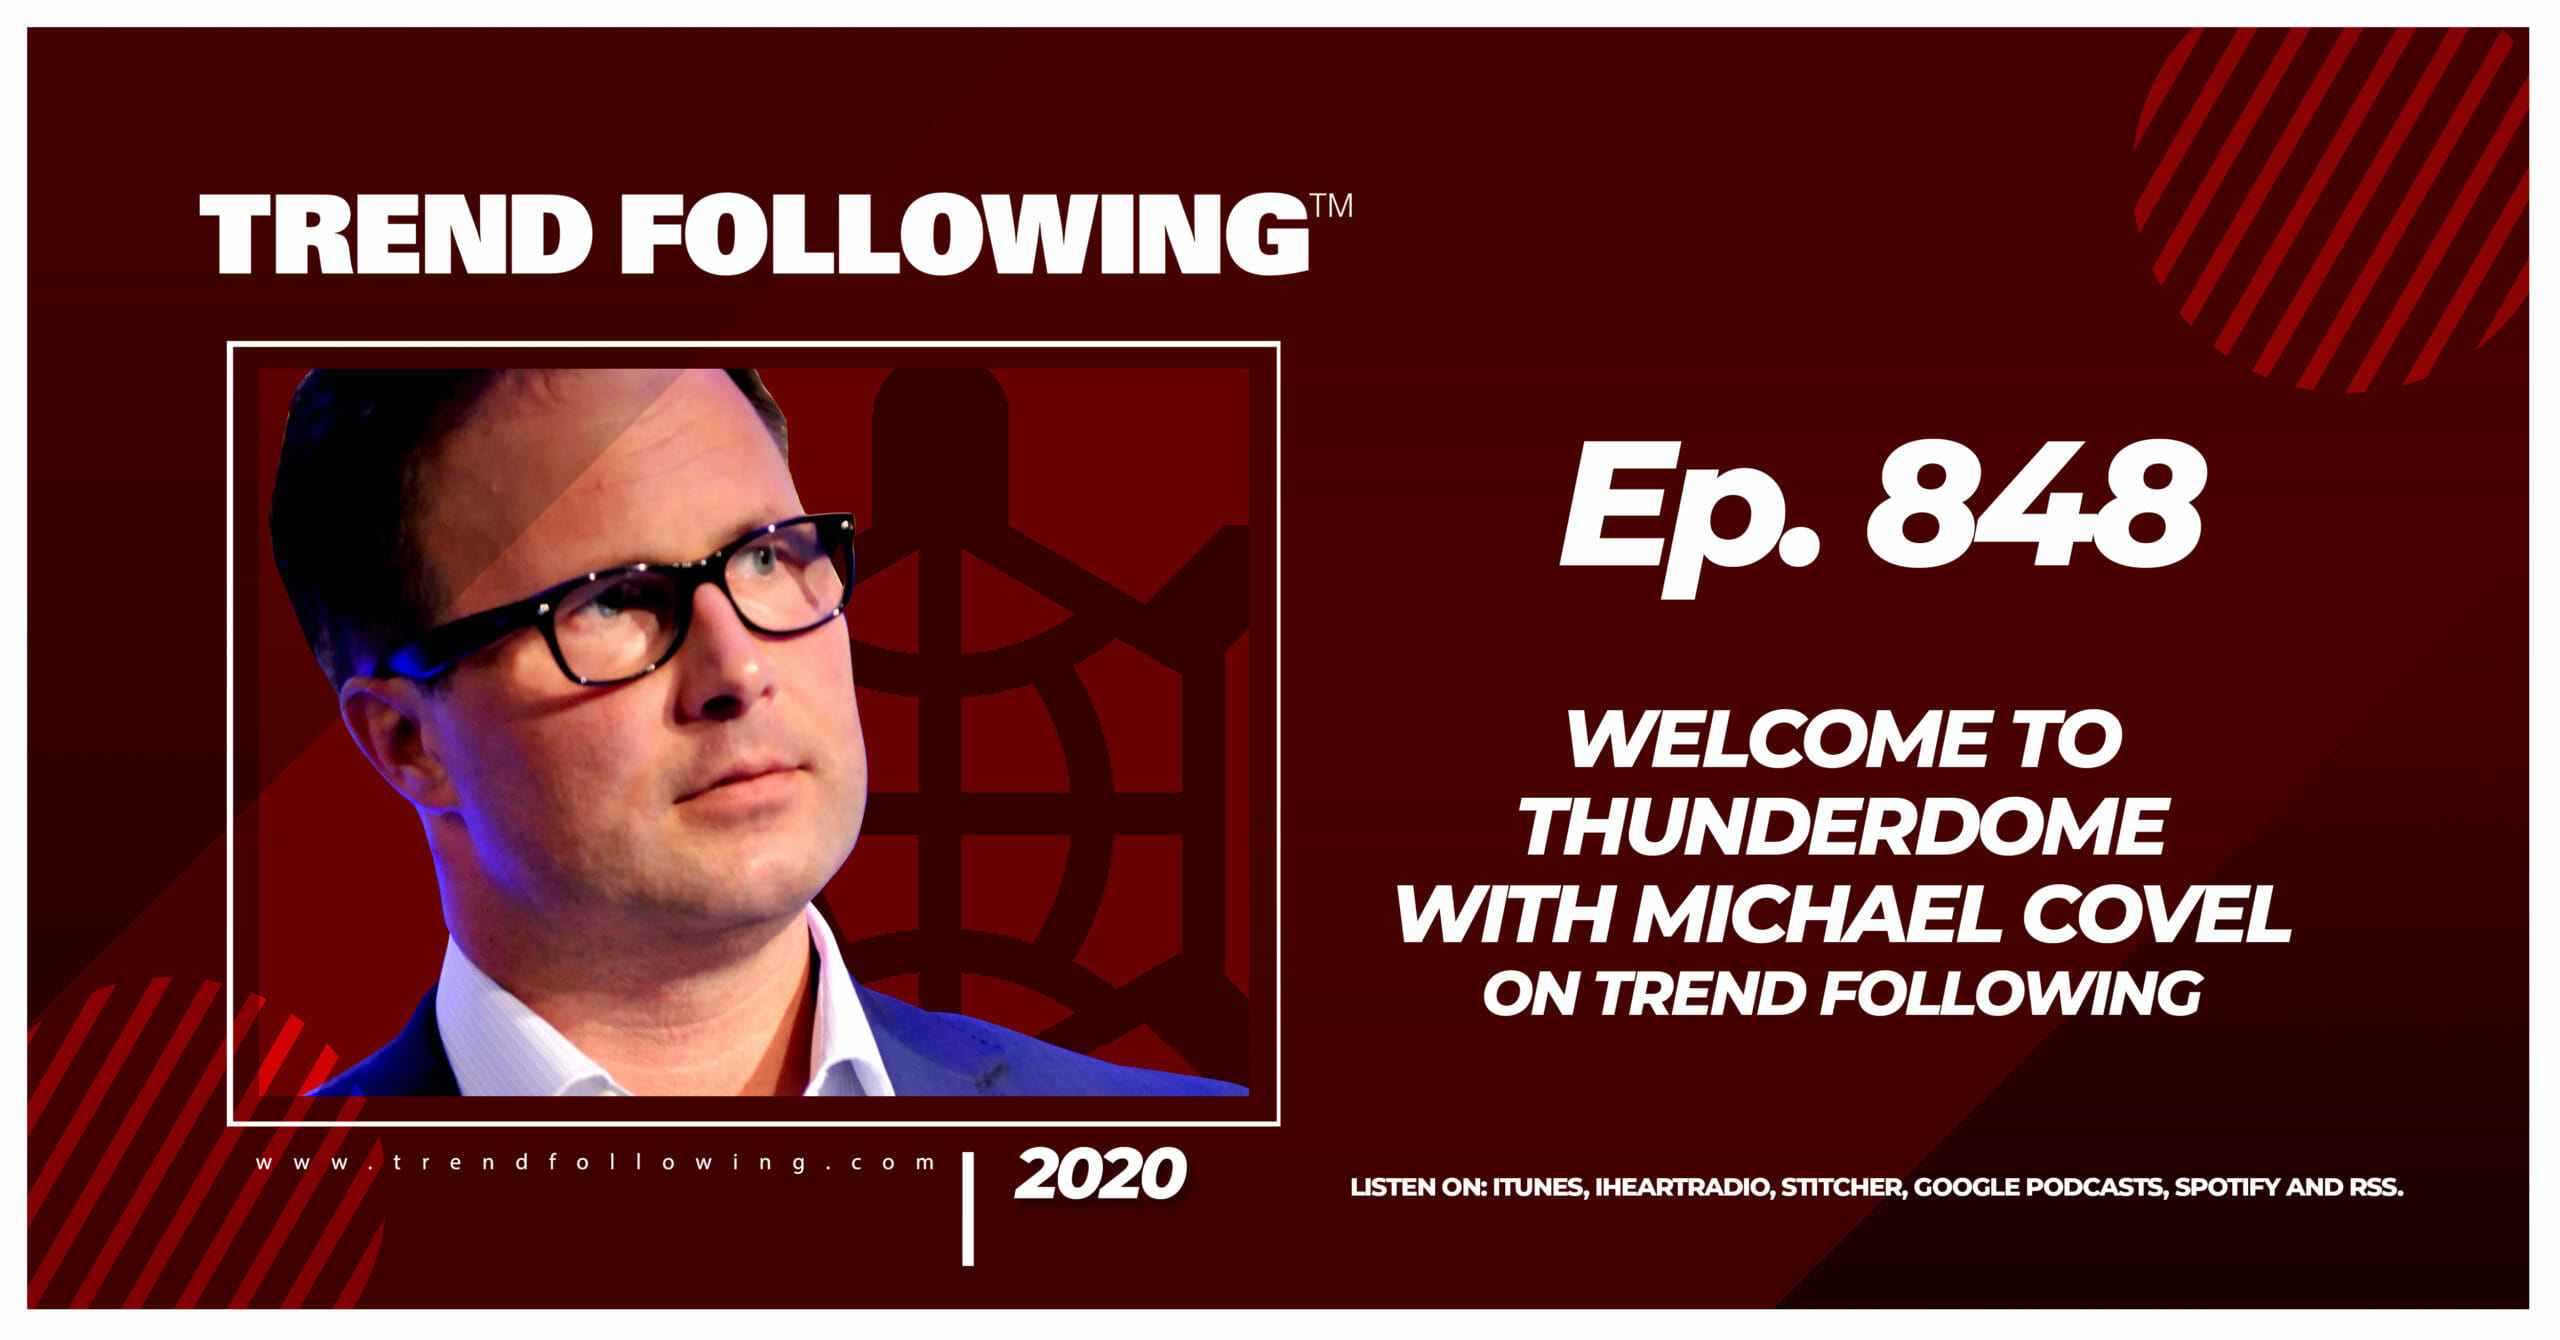 Episode 848 Welcome to Thunderdome with Michael Covel